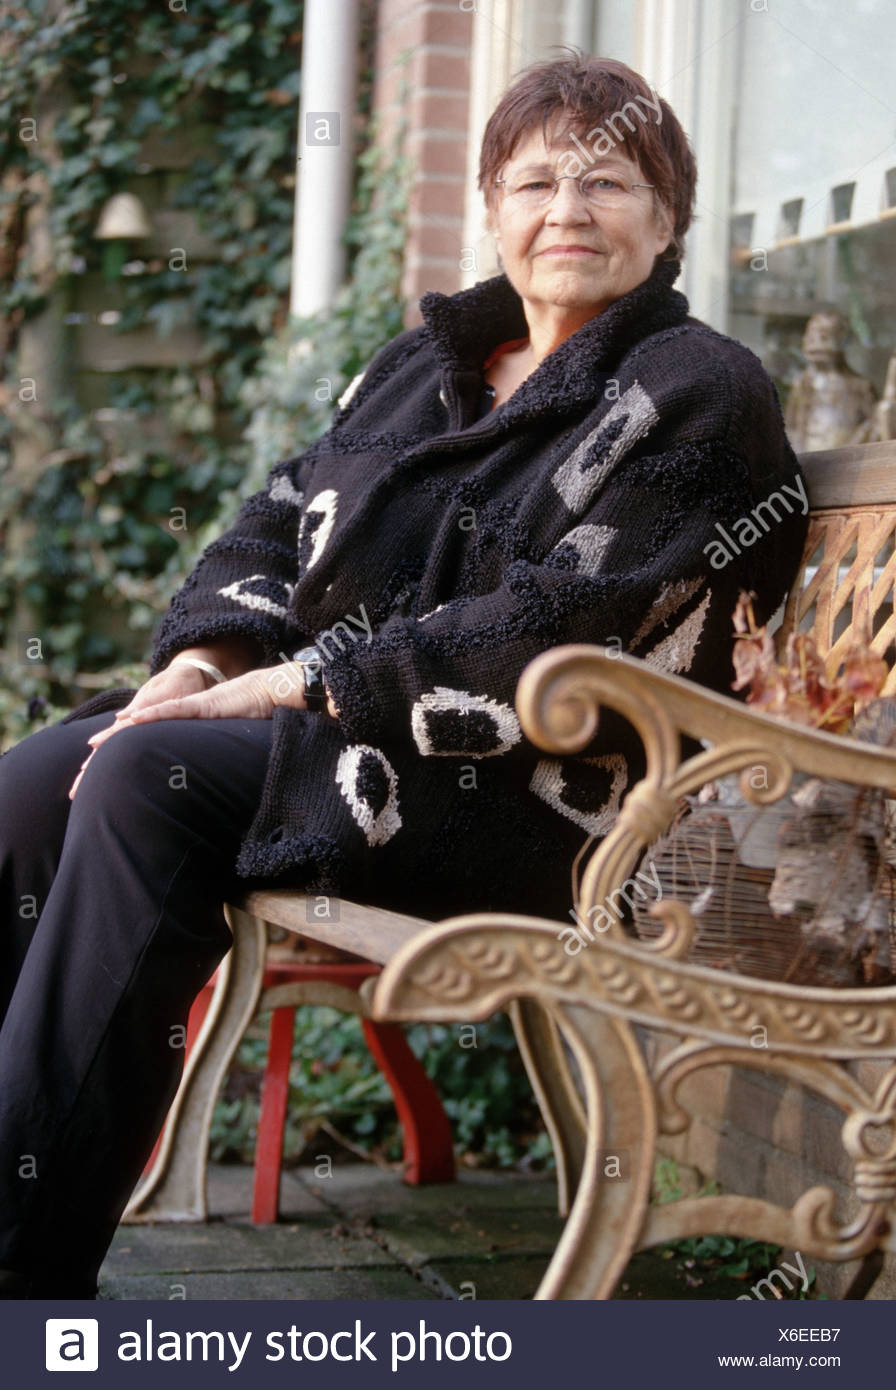 Senior woman sitting on front porch bench looking seriously at the camera  - SerieCVS500200d - Stock Image